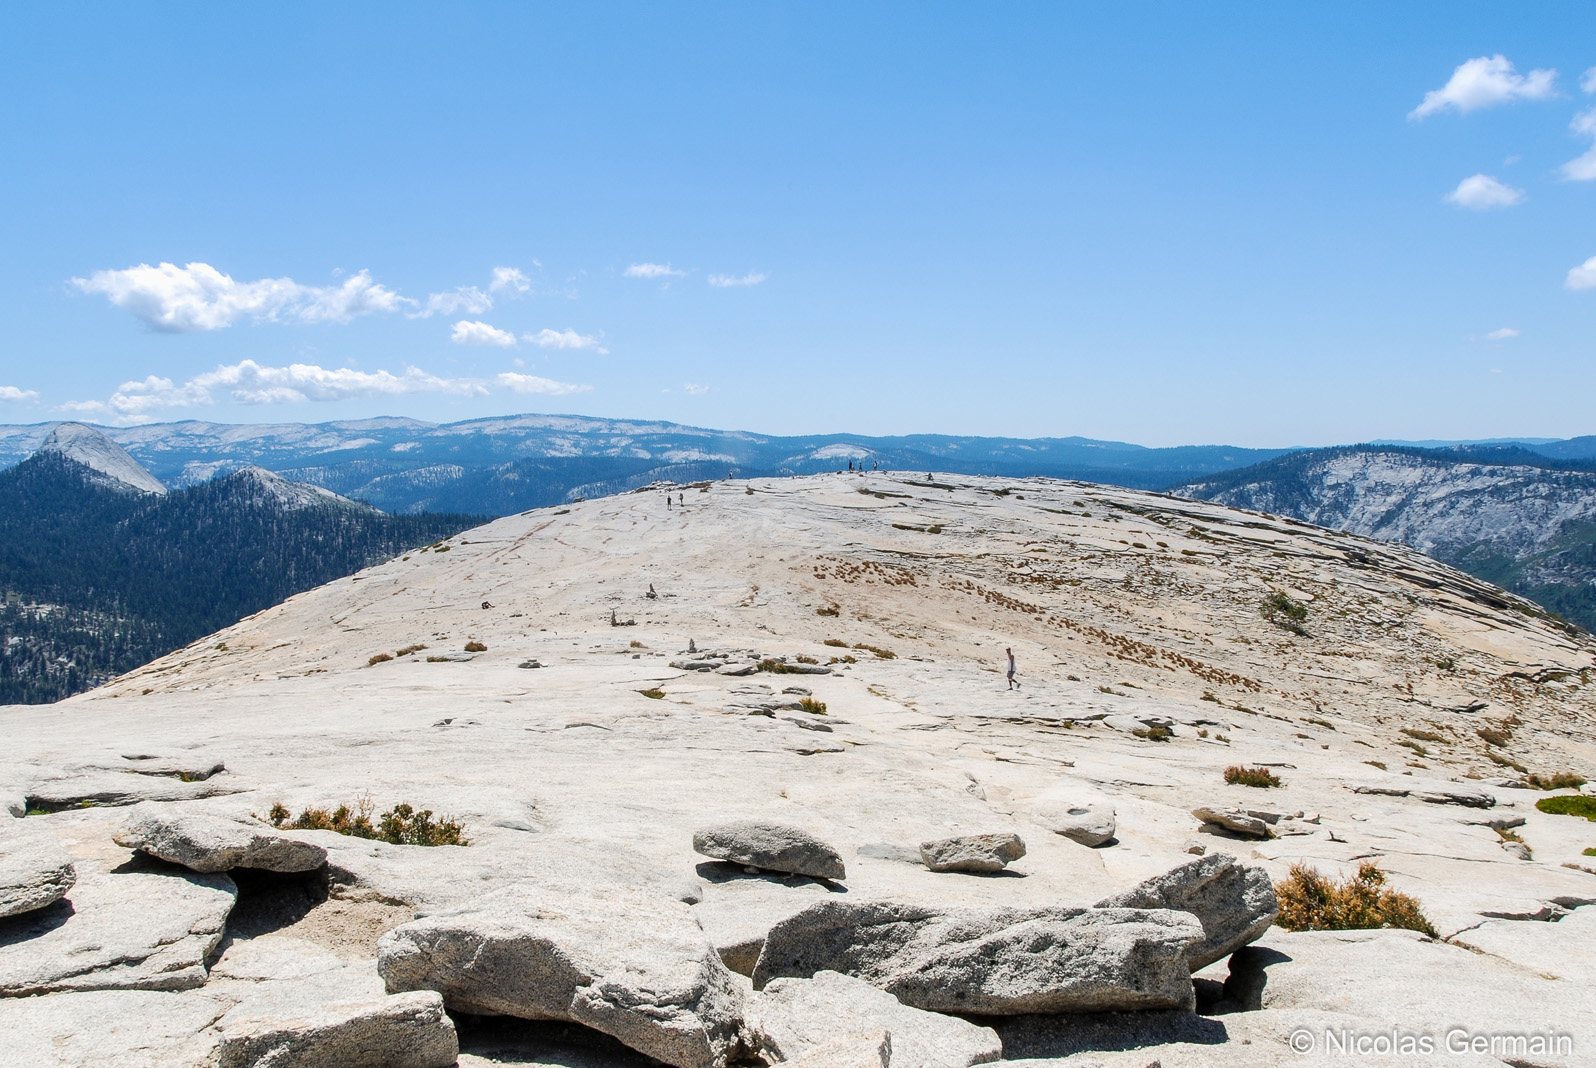 Le sommet relativement plat du Half Dome, Yosemite